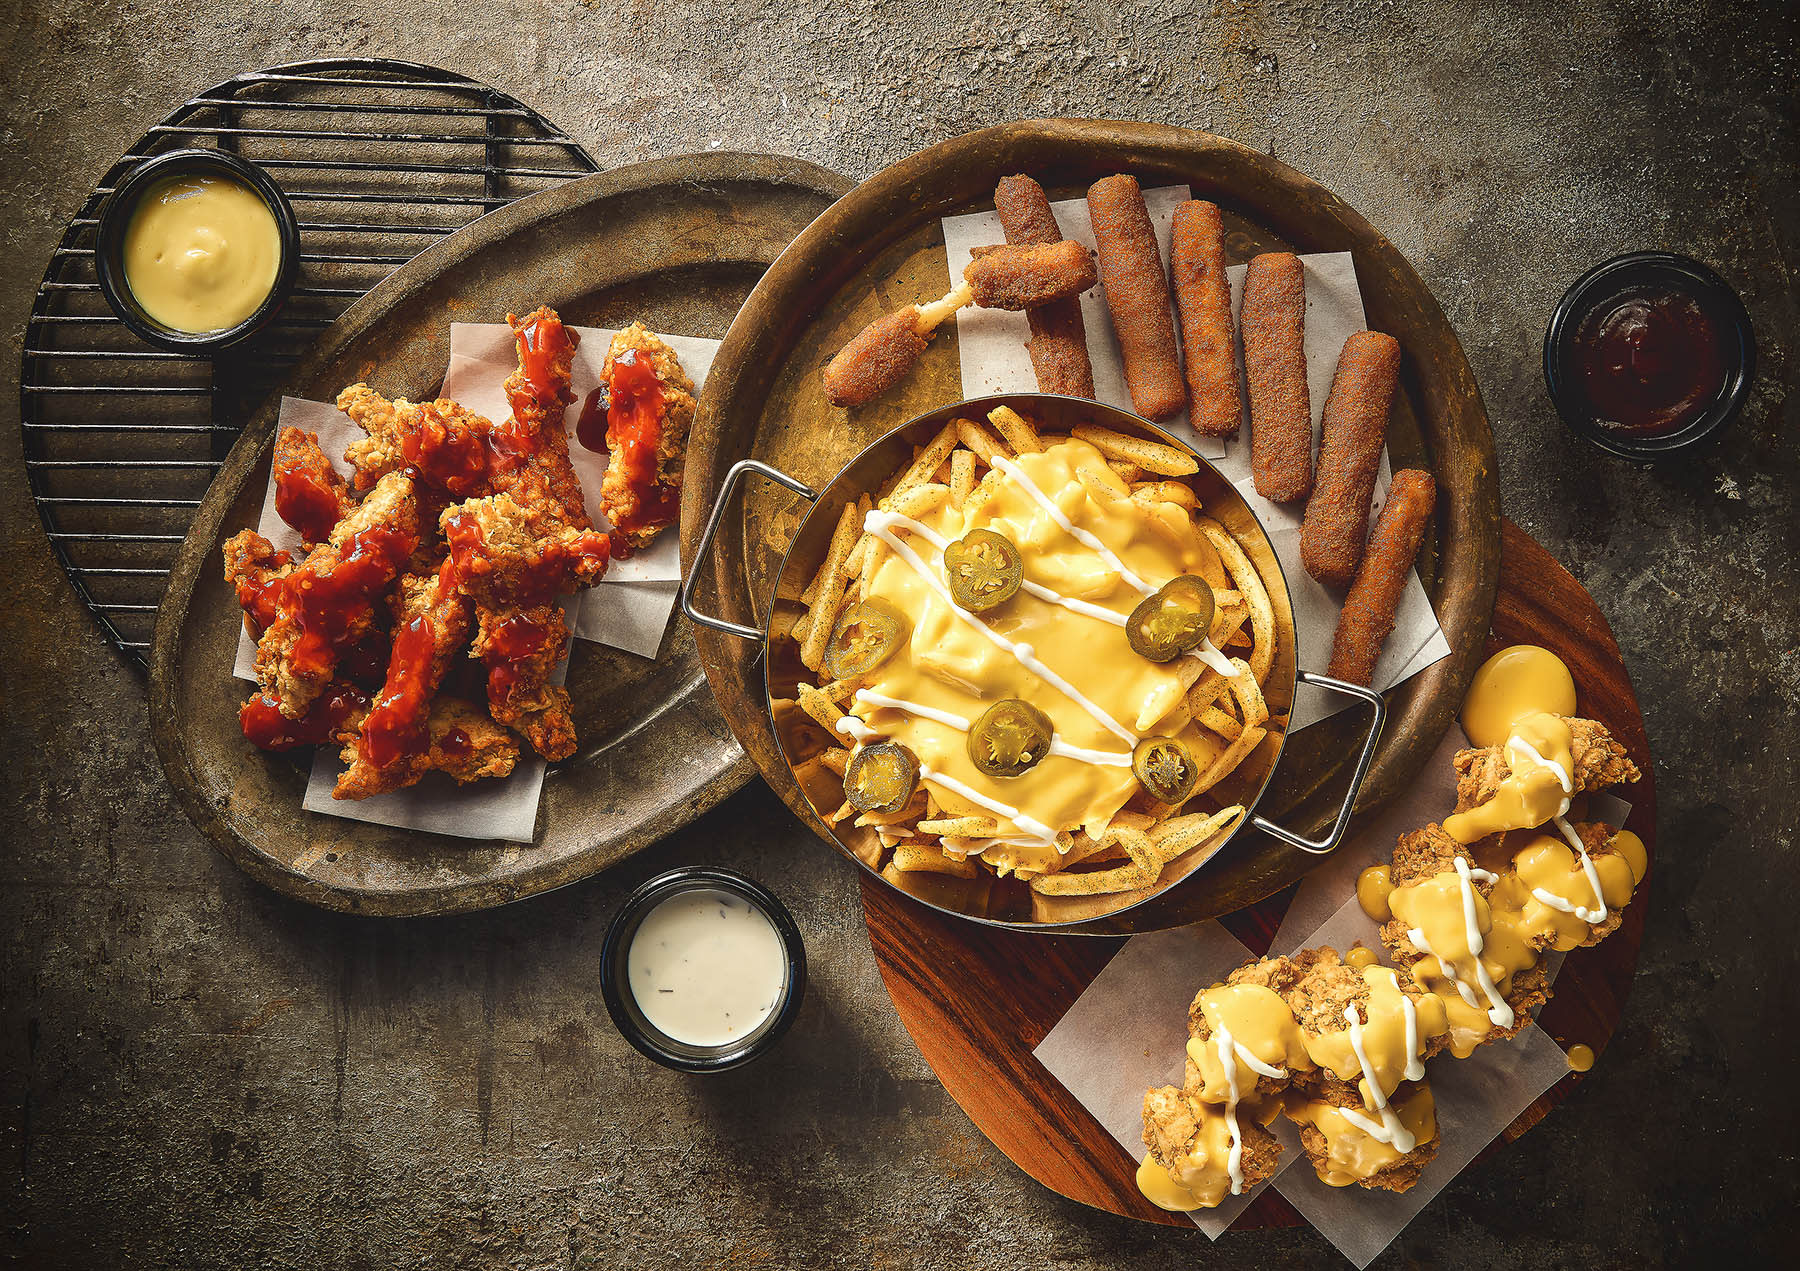 Appetizers - Brew and Chew - Food photographer - Egypt - Mohamed Abdel-Hady